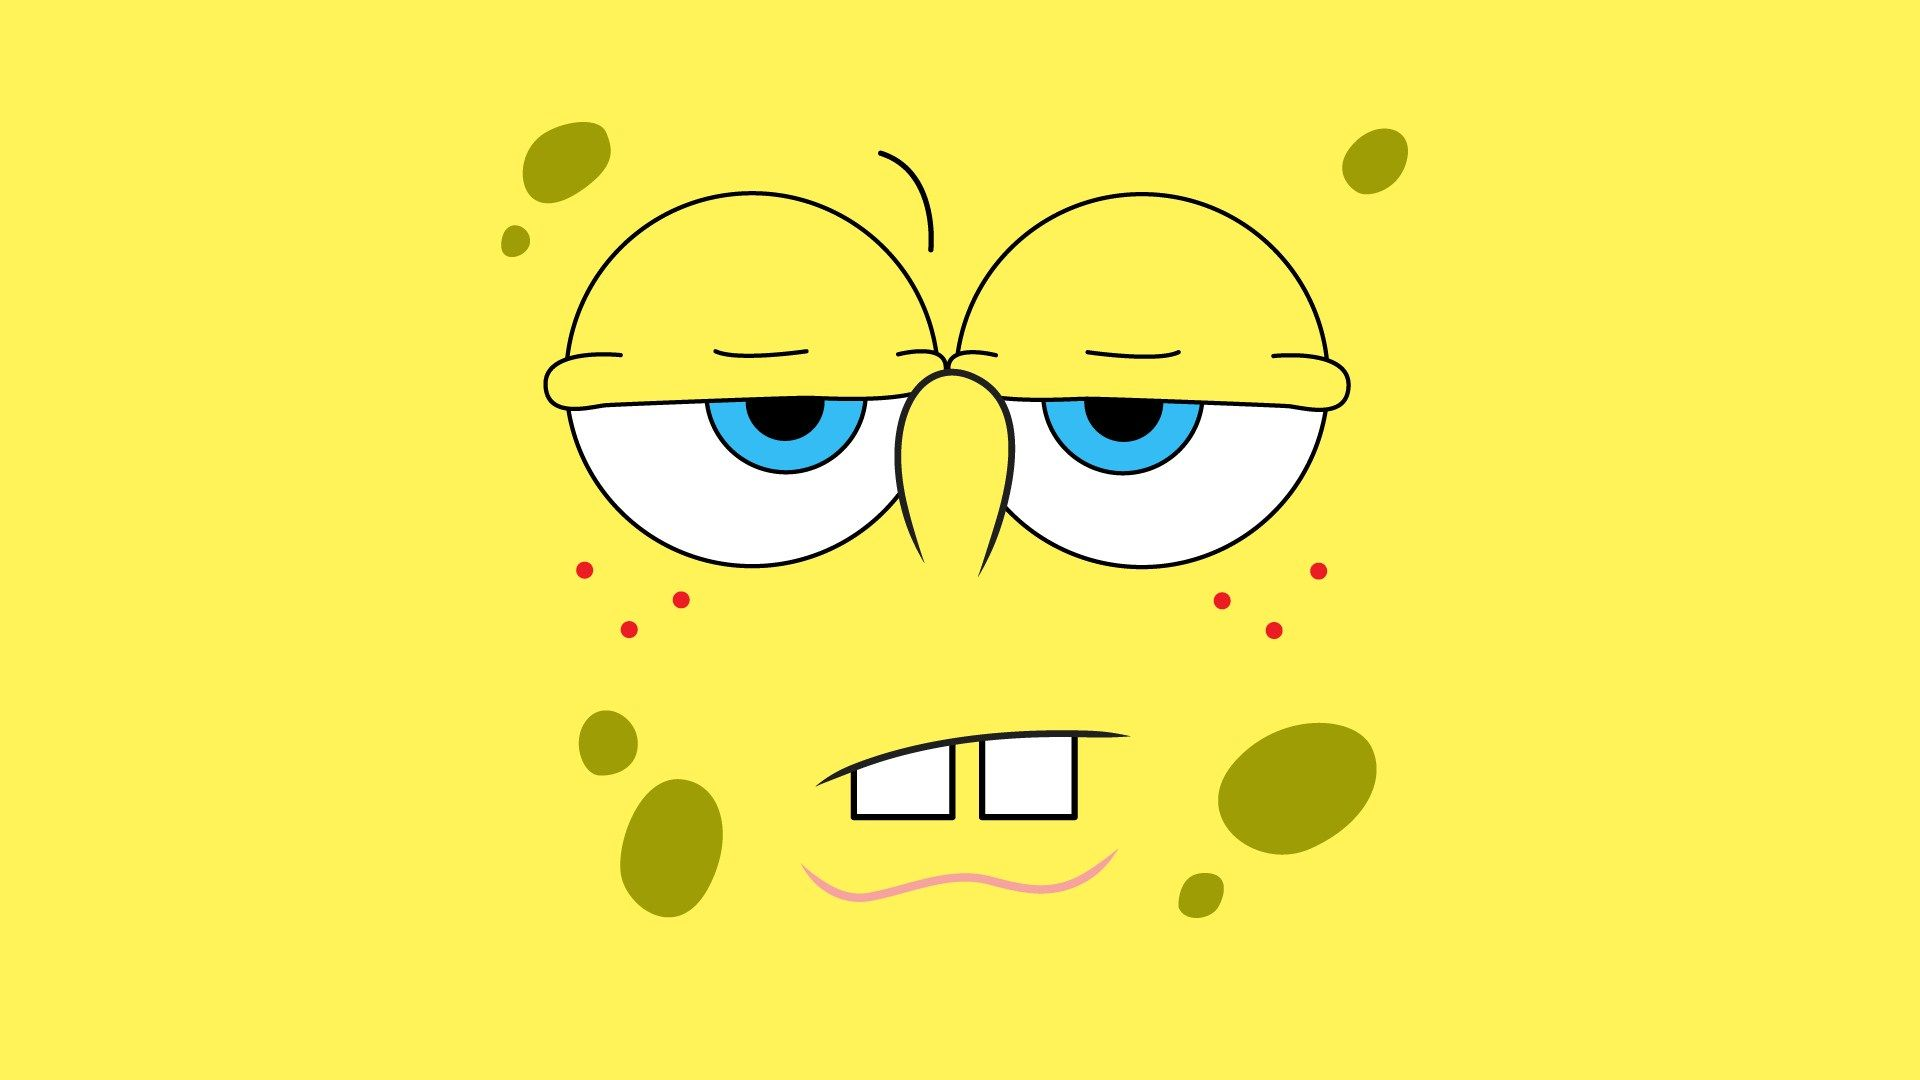 Spongebob Cartoon Hd Wallpapers Hd Wallpapers Kartun Gambar Lucu Lucu